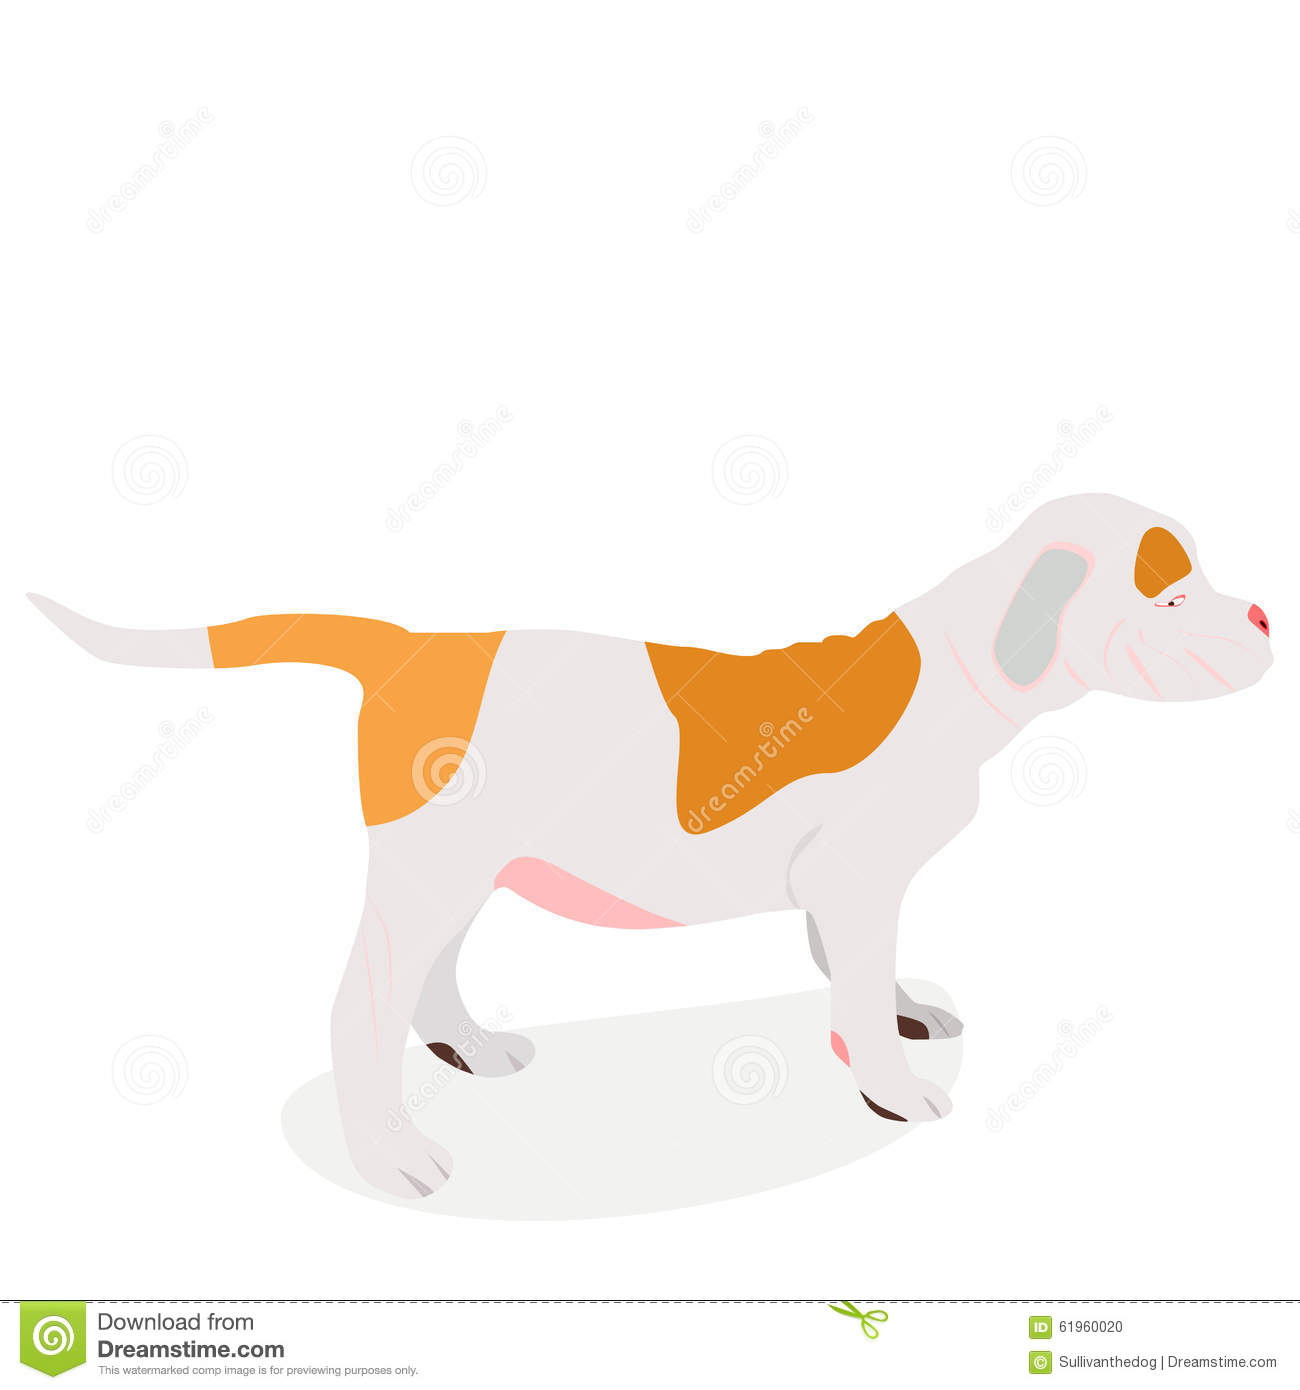 American bulldog vector - photo#14